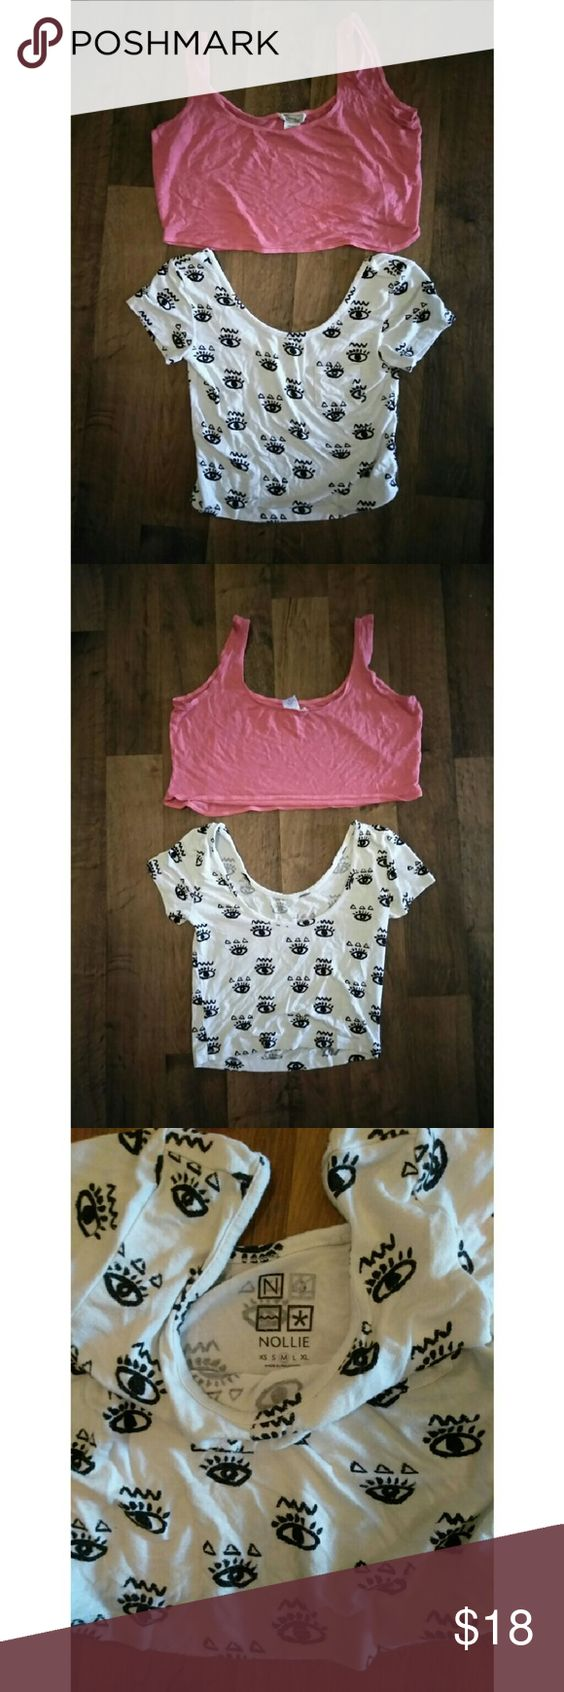 Nollie (M) and Kirra (S) Crop tops bundle This listing is for both crop tops, the pink crop is Kirra Small (oversized), and the short sleeve white is Nollie Medium. Comment with questions offer button for offers. :) Nollie Tops Crop Tops